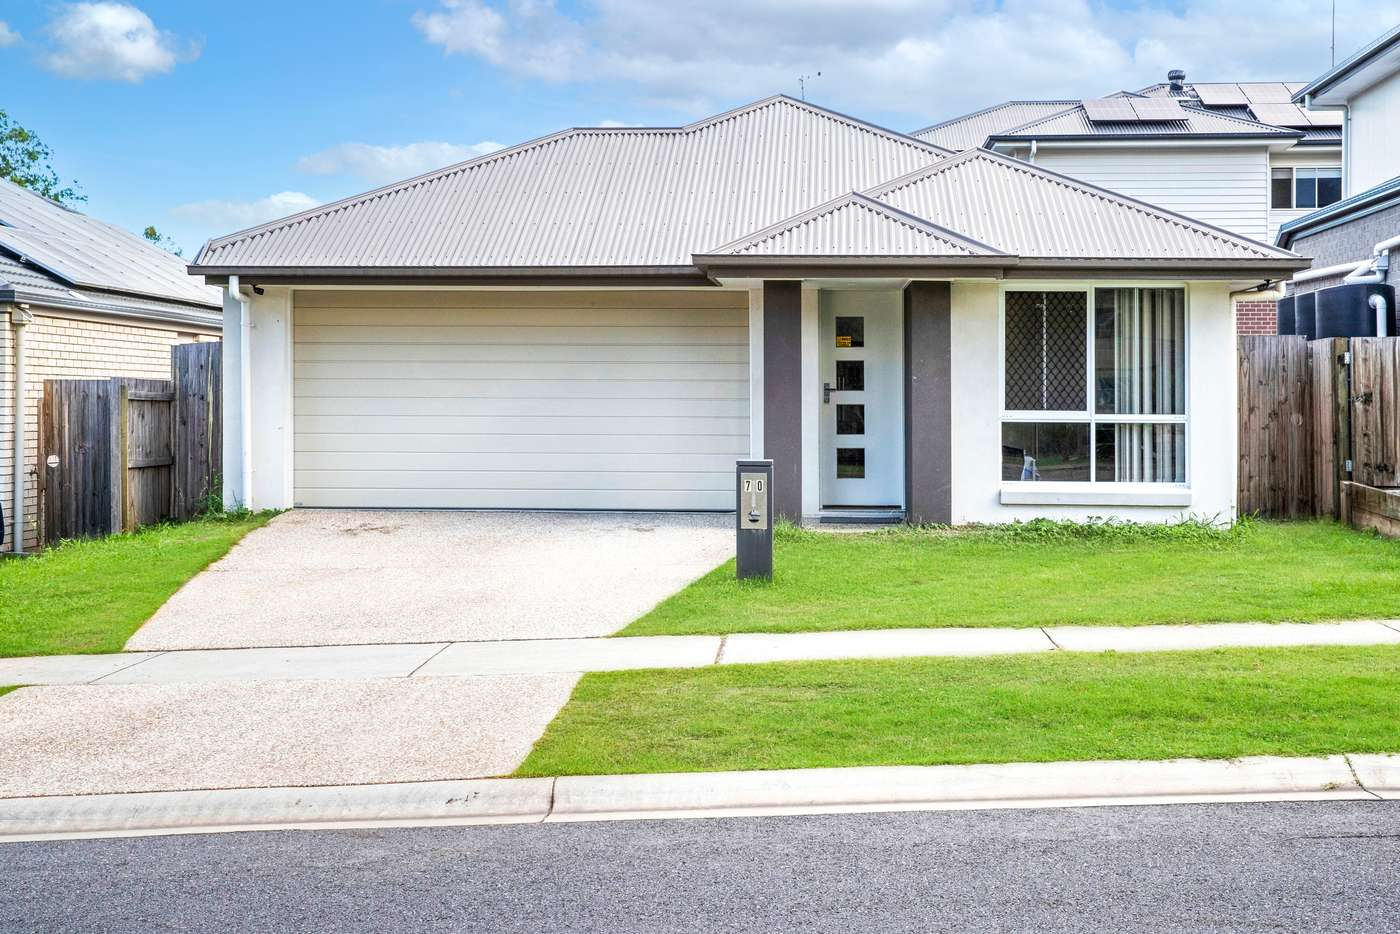 Main view of Homely house listing, 70 Blackwell Street, Hillcrest QLD 4118